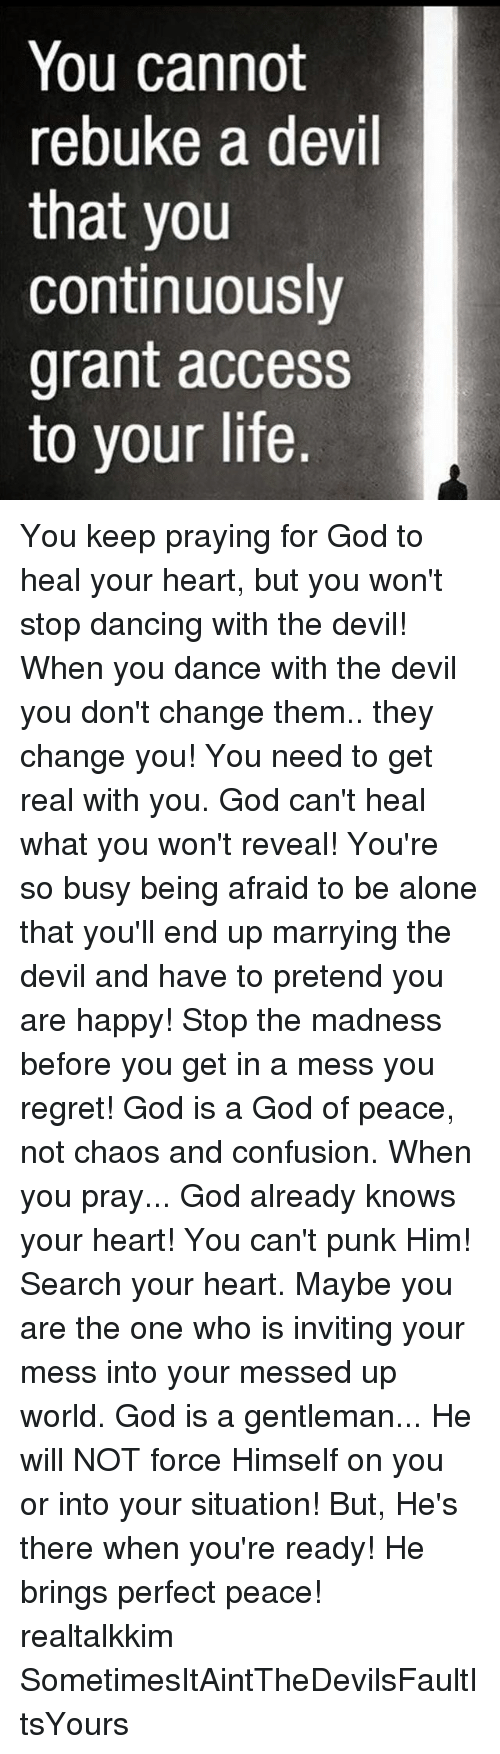 Being Alone, Dancing, and God: You cannot  rebuke a devil  that you  continuously  grant access  to your life. You keep praying for God to heal your heart, but you won't stop dancing with the devil! When you dance with the devil you don't change them.. they change you! You need to get real with you. God can't heal what you won't reveal! You're so busy being afraid to be alone that you'll end up marrying the devil and have to pretend you are happy! Stop the madness before you get in a mess you regret! God is a God of peace, not chaos and confusion. When you pray... God already knows your heart! You can't punk Him! Search your heart. Maybe you are the one who is inviting your mess into your messed up world. God is a gentleman... He will NOT force Himself on you or into your situation! But, He's there when you're ready! He brings perfect peace! realtalkkim SometimesItAintTheDevilsFaultItsYours